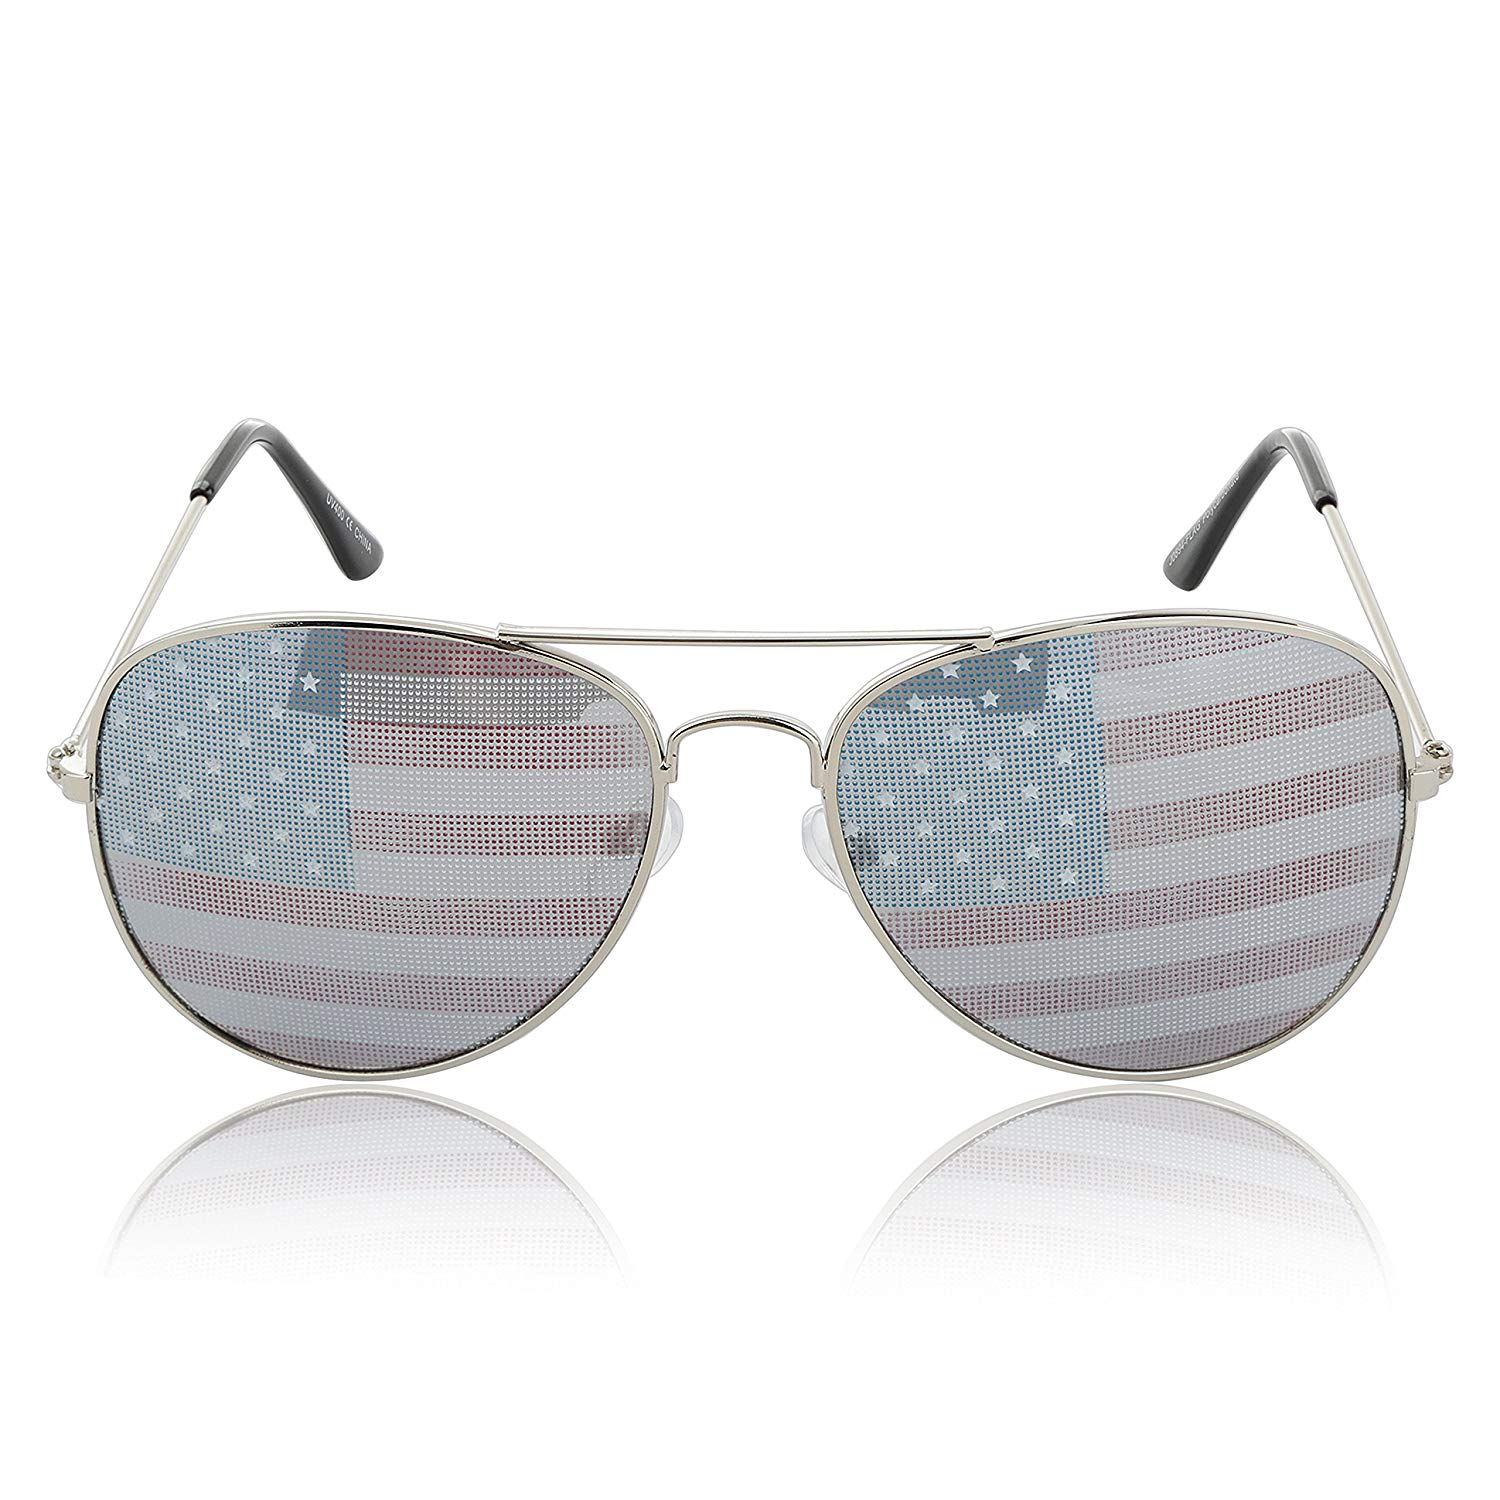 255aa799ba23 Get Quotations · American Flag Sunglasses Patriotic USA Aviator Glasses  100% UV 400 Protection